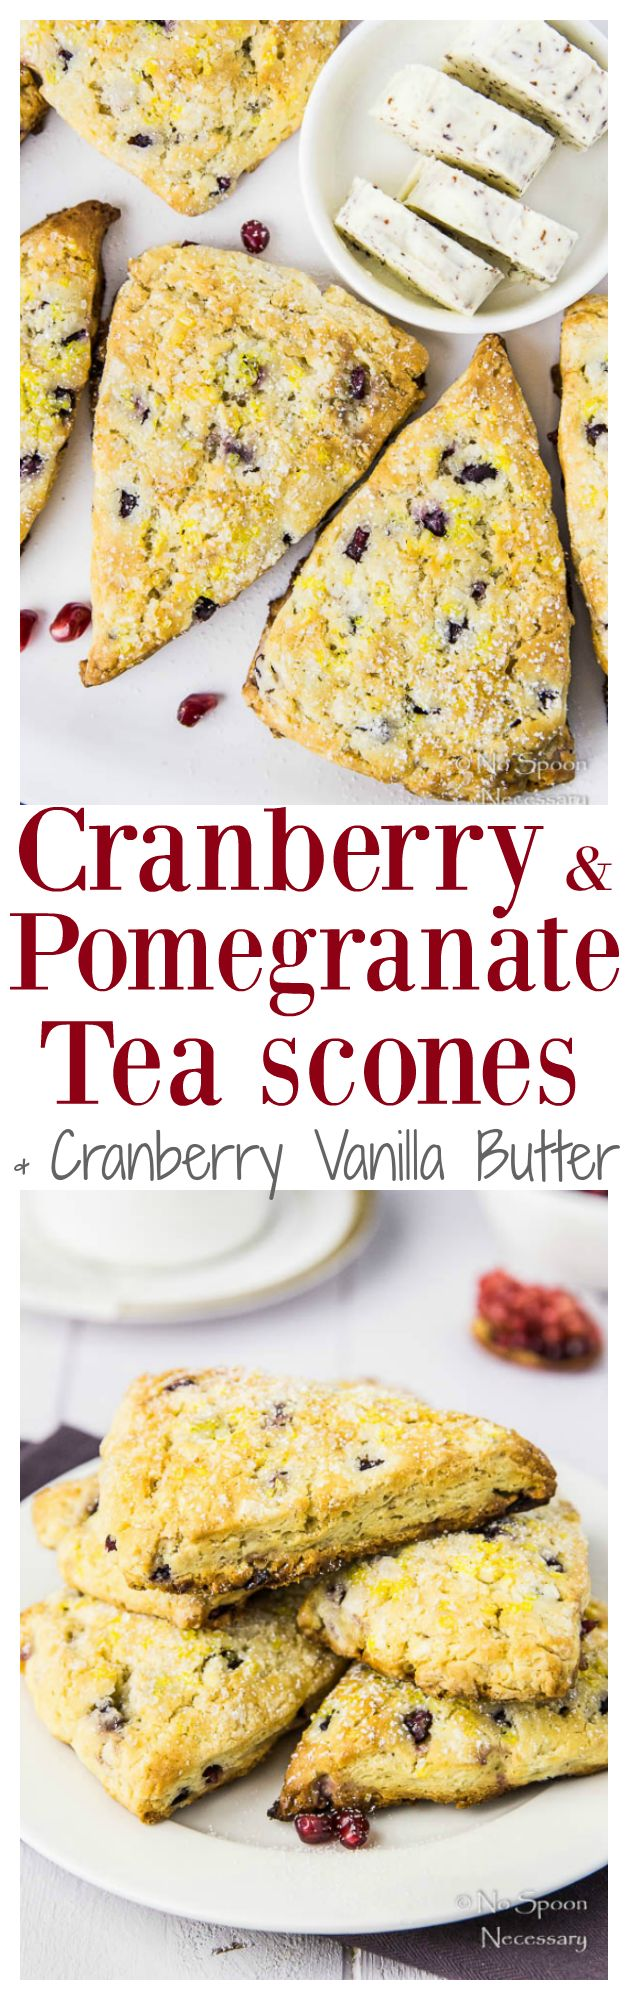 Cranberry & Pomegranate Tea Scones with Cranberry-Vanilla Butter. These Scones can be Prepared in Advance & are Perfect for the Holidays! #celestialseasonings #themagicoftea